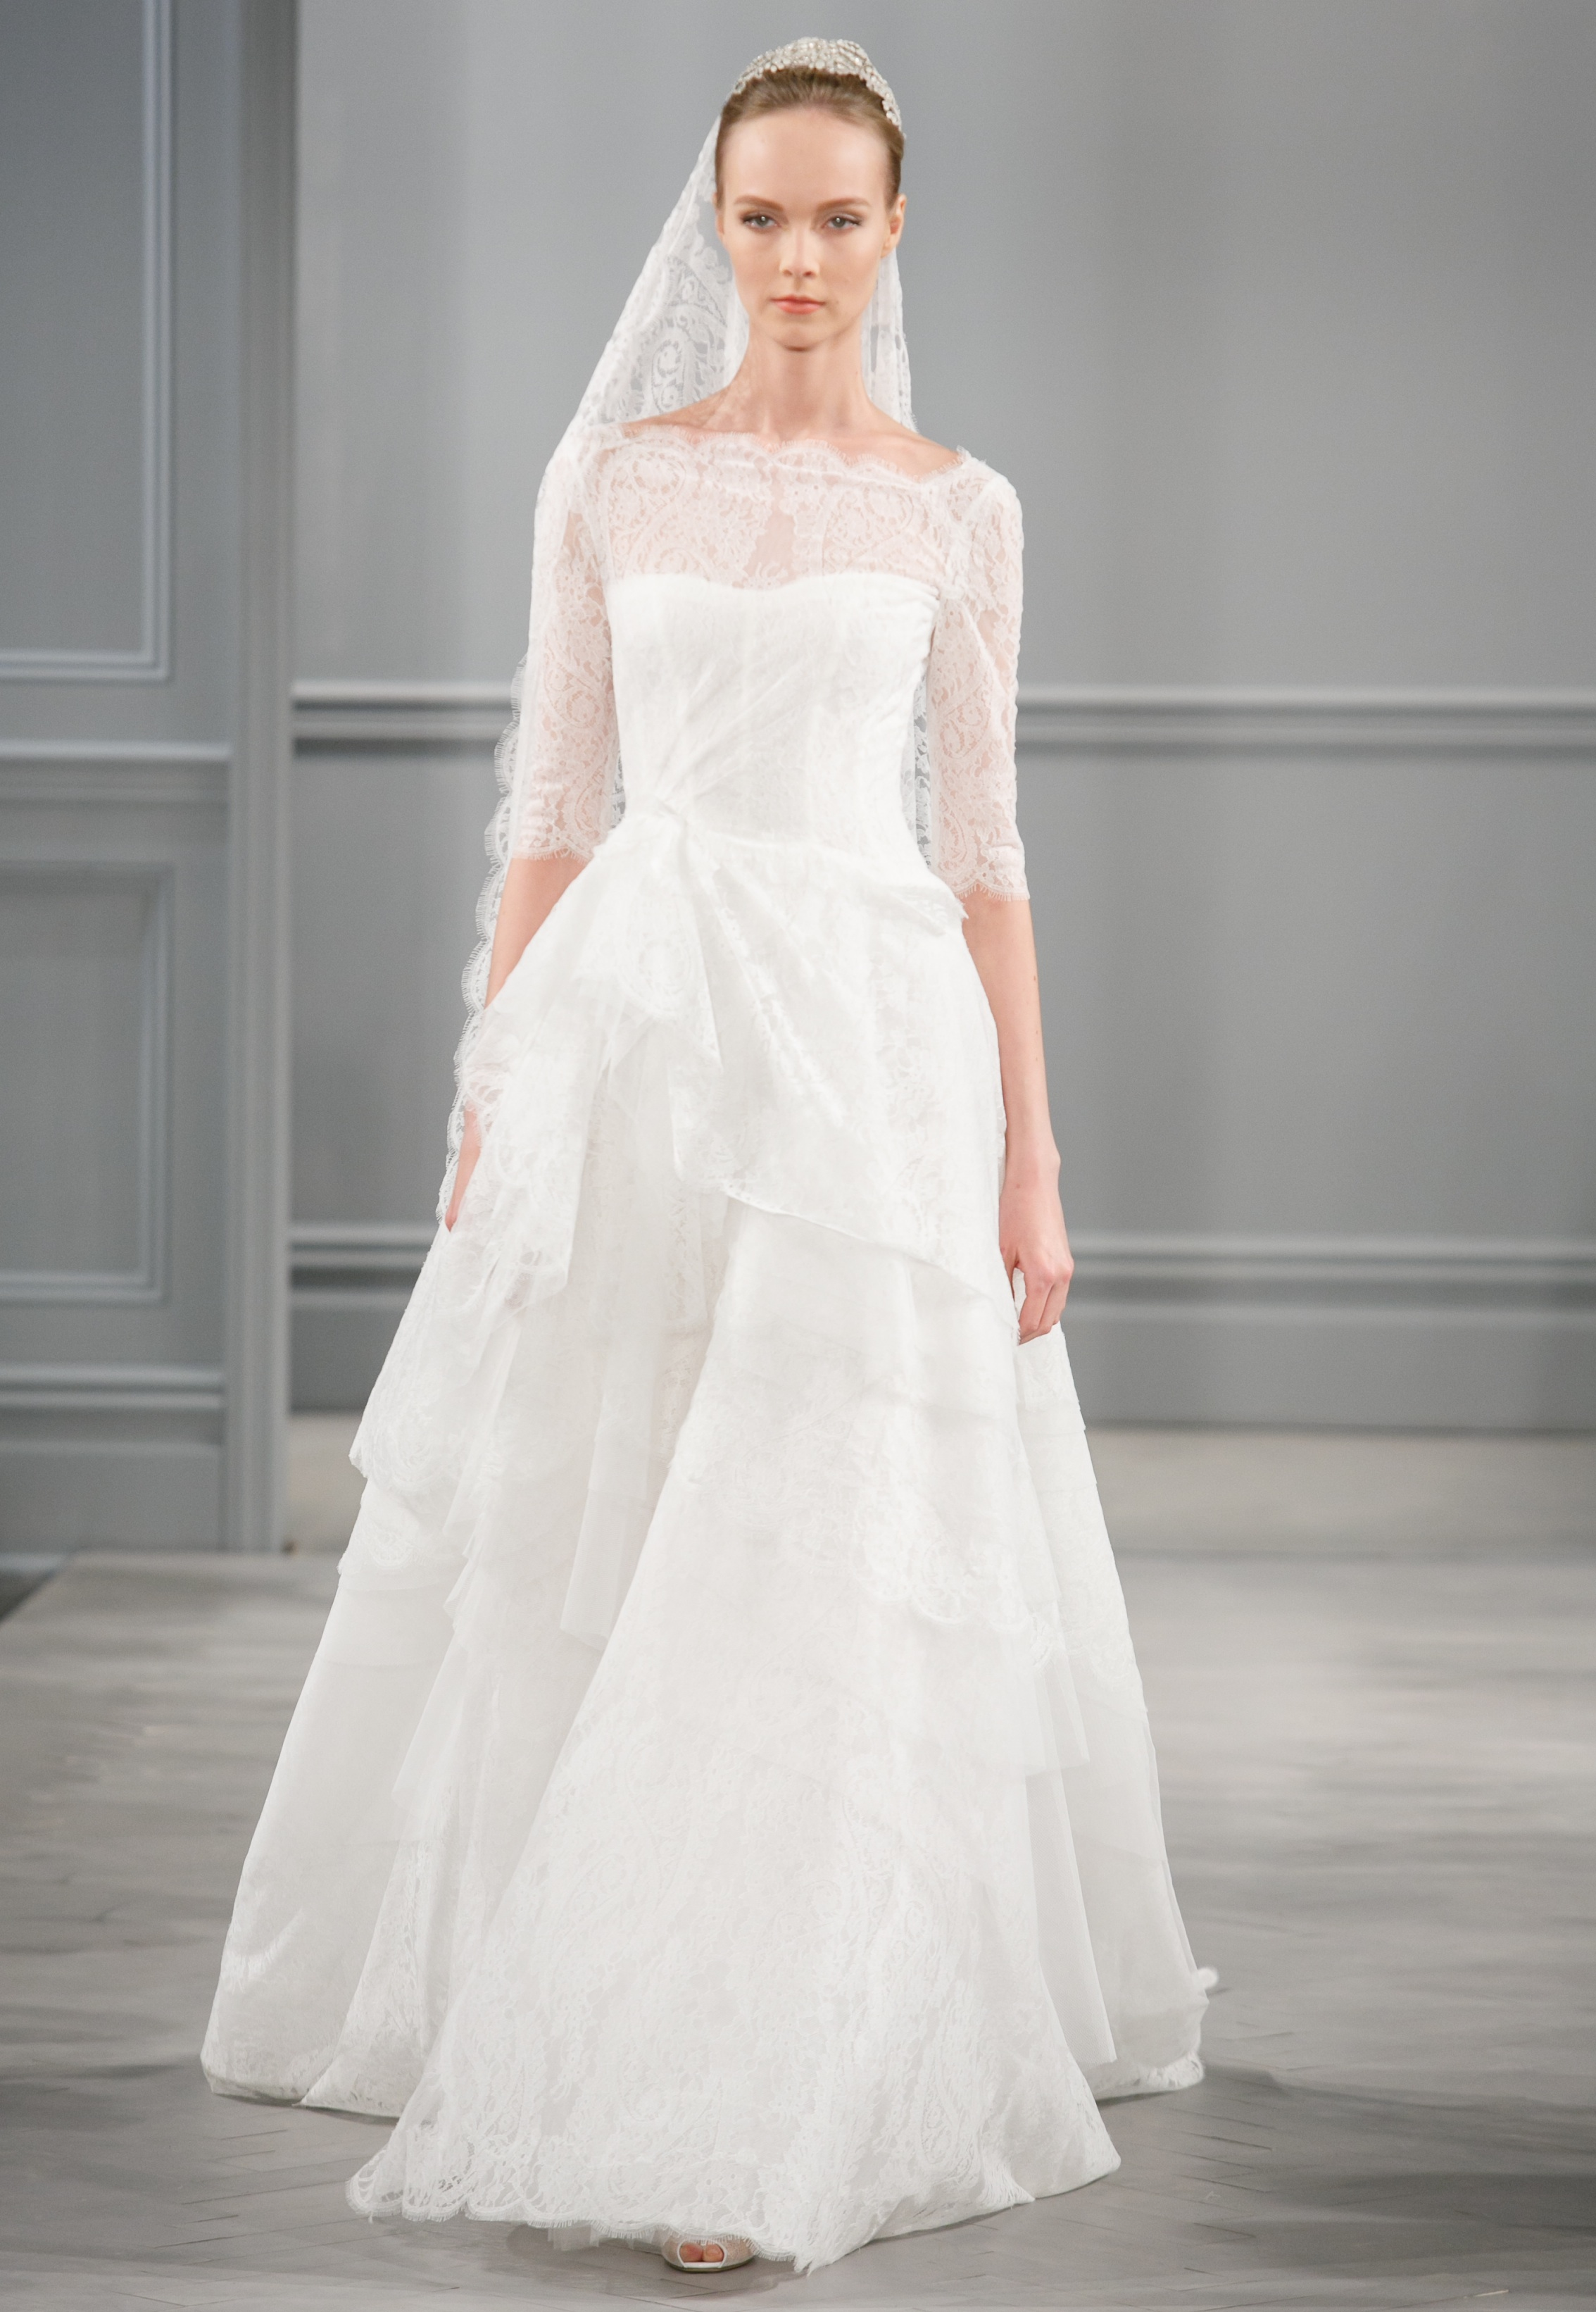 Spring 2014 wedding dress monique lhuillier bridal monaco for Monique lhuillier wedding dress